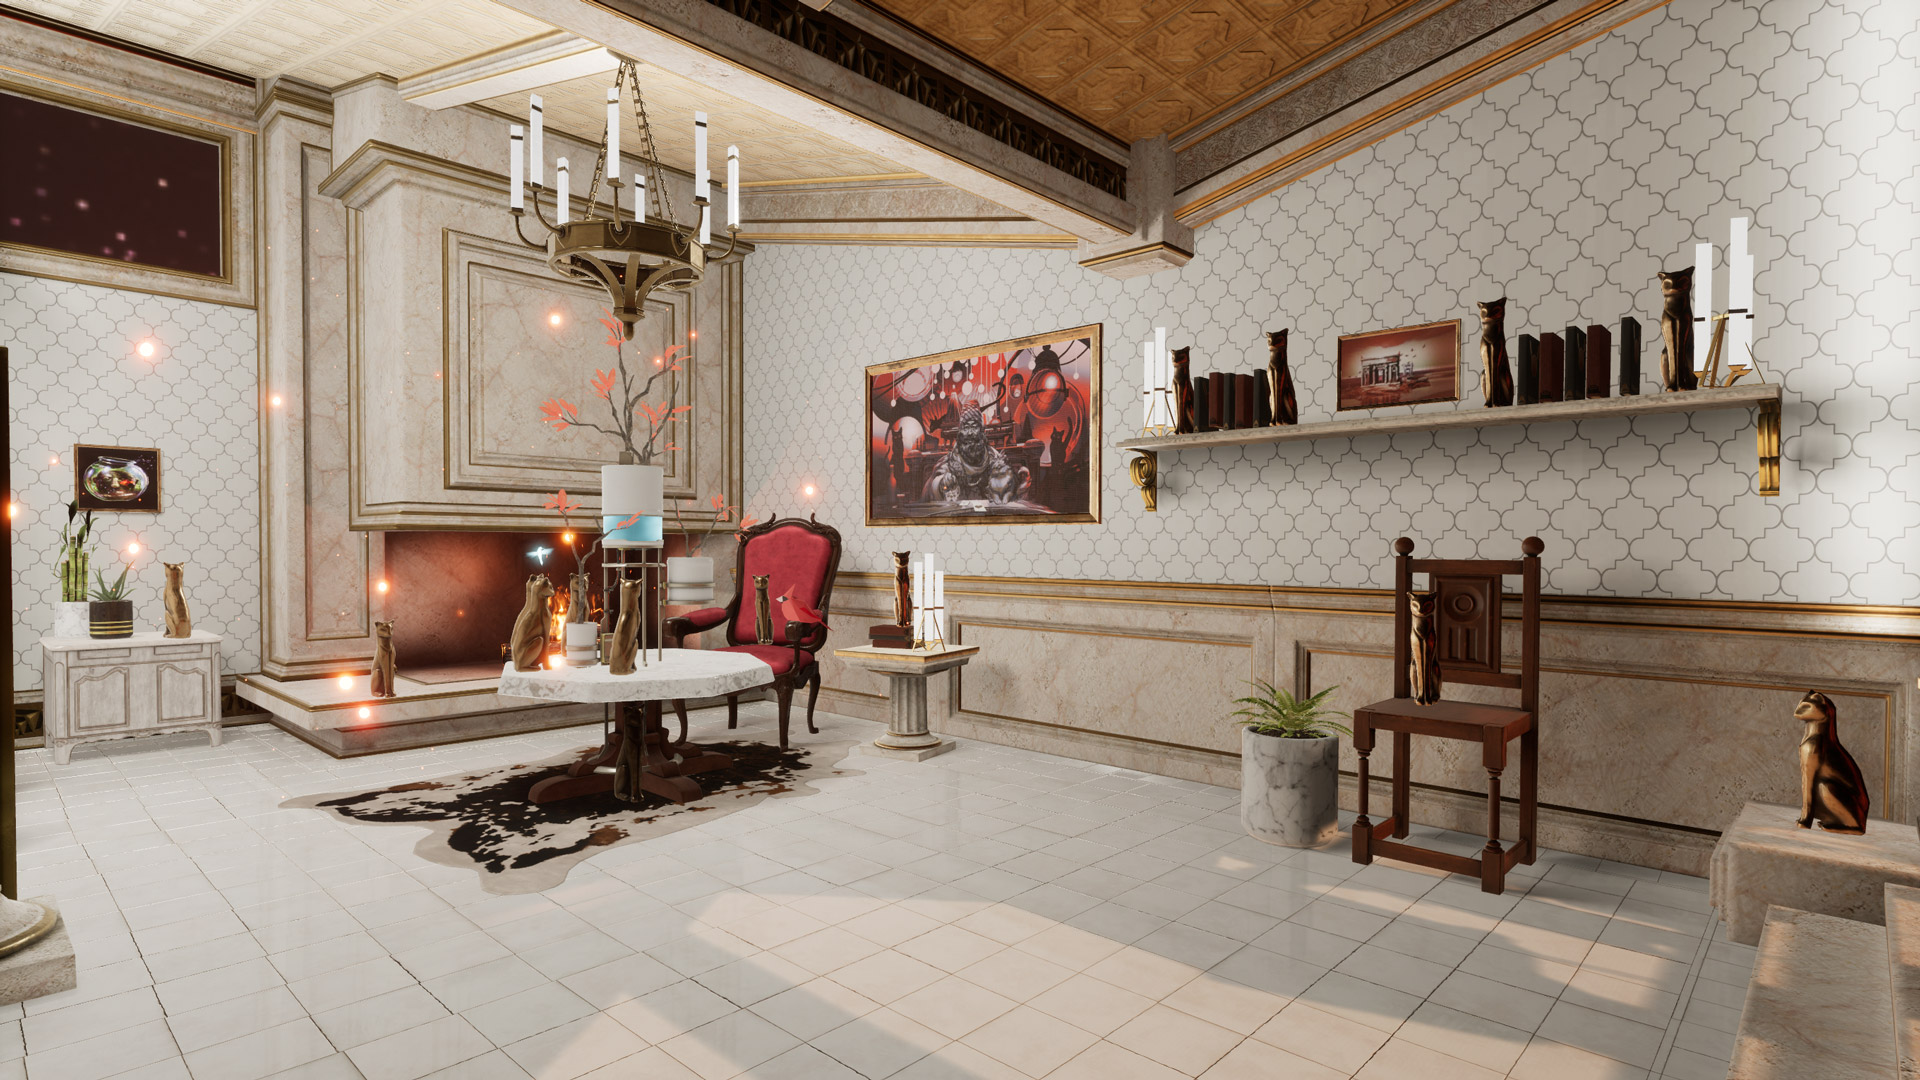 Oculus Home (not mine)